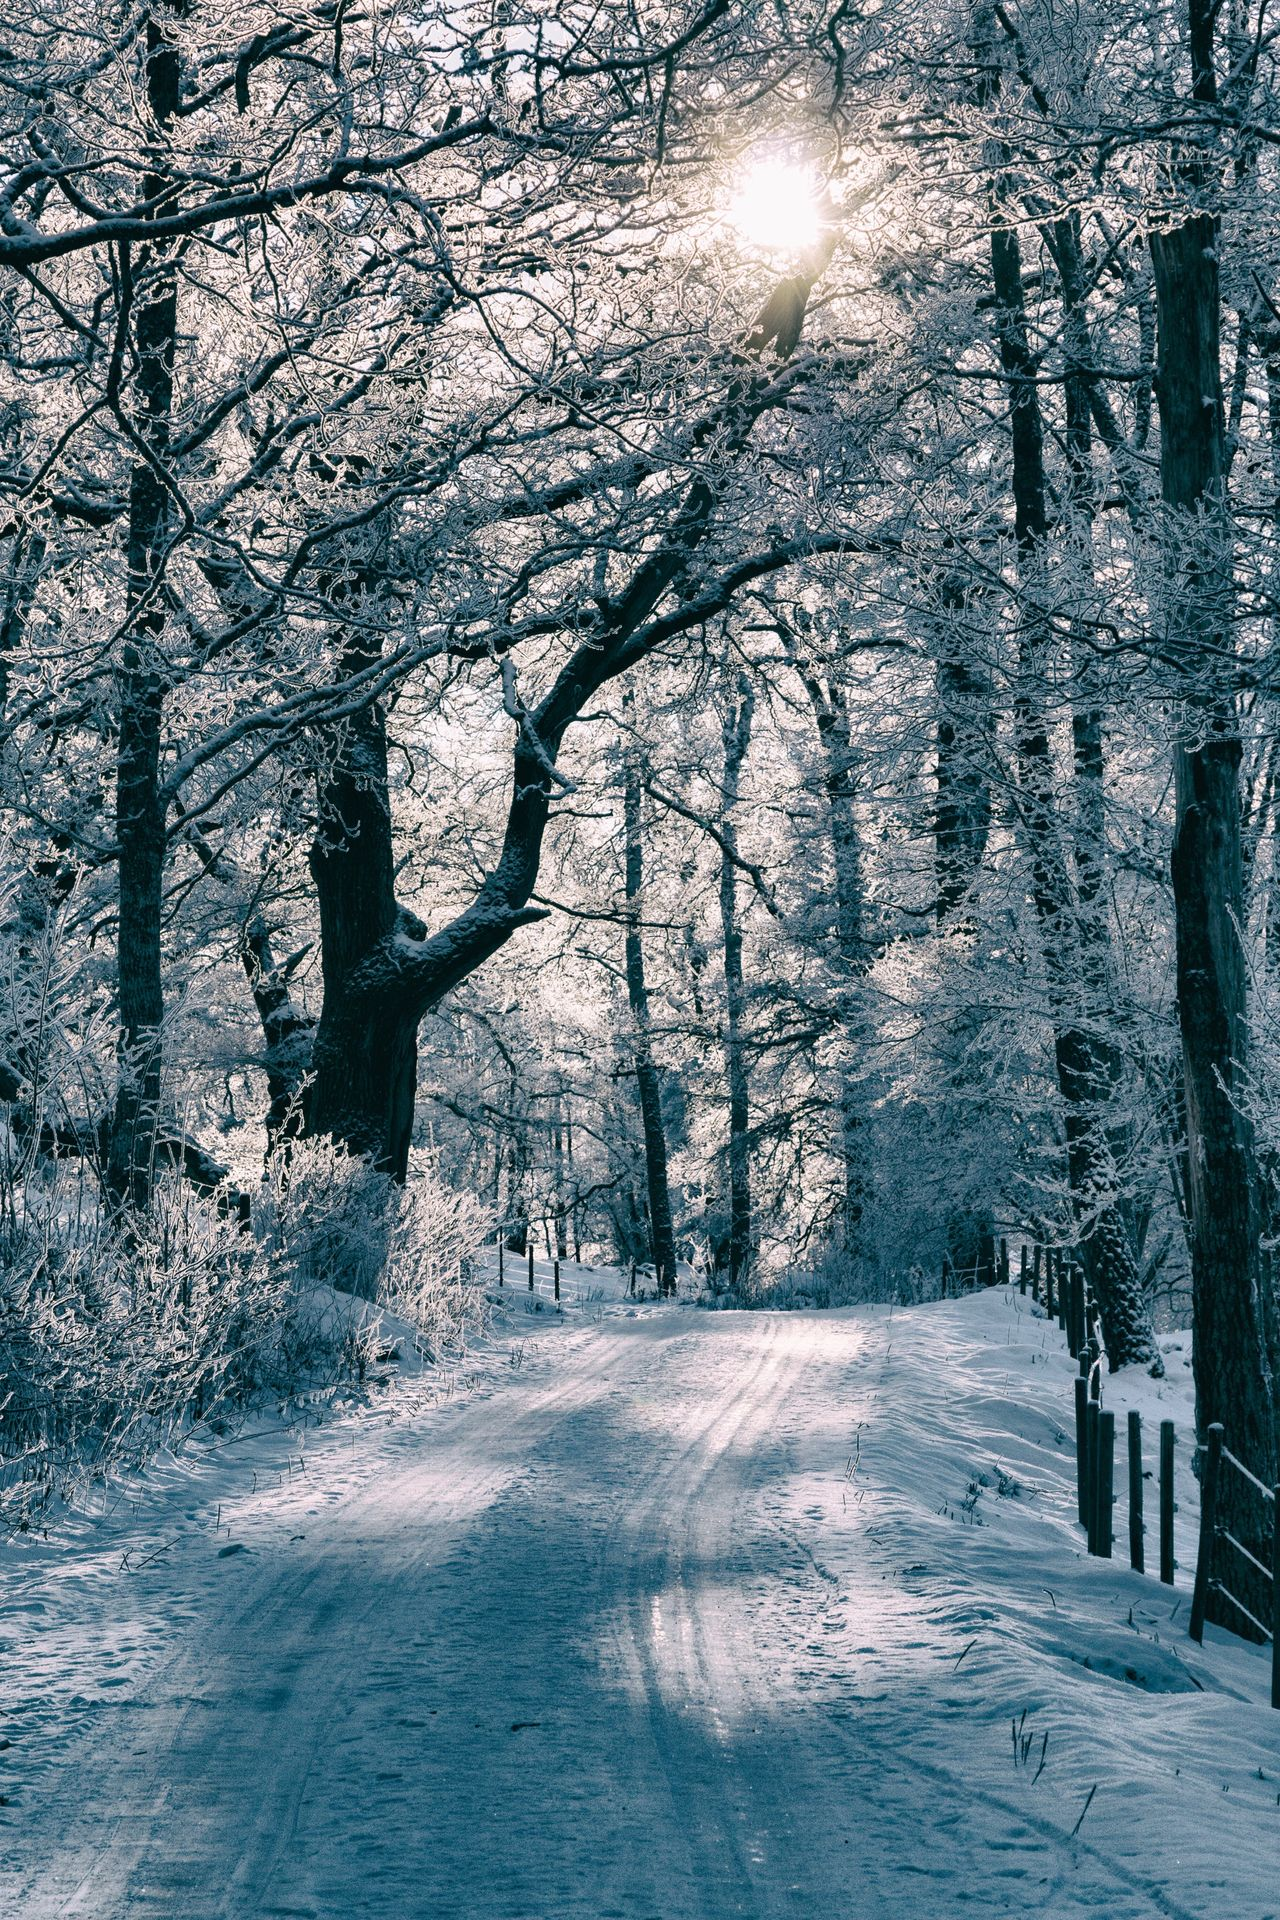 Snow Winter Cold Temperature Tree Nature Beauty In Nature Weather Sunlight Sunbeam Branch Scenics Bare Tree Outdoors Landscape Drastic Edit EyeEm Best Edits First Eyeem Photo Hello World Finding New Frontiers The Way Forward Tranquility Tranquil Scene Idyllic Scenic Sun